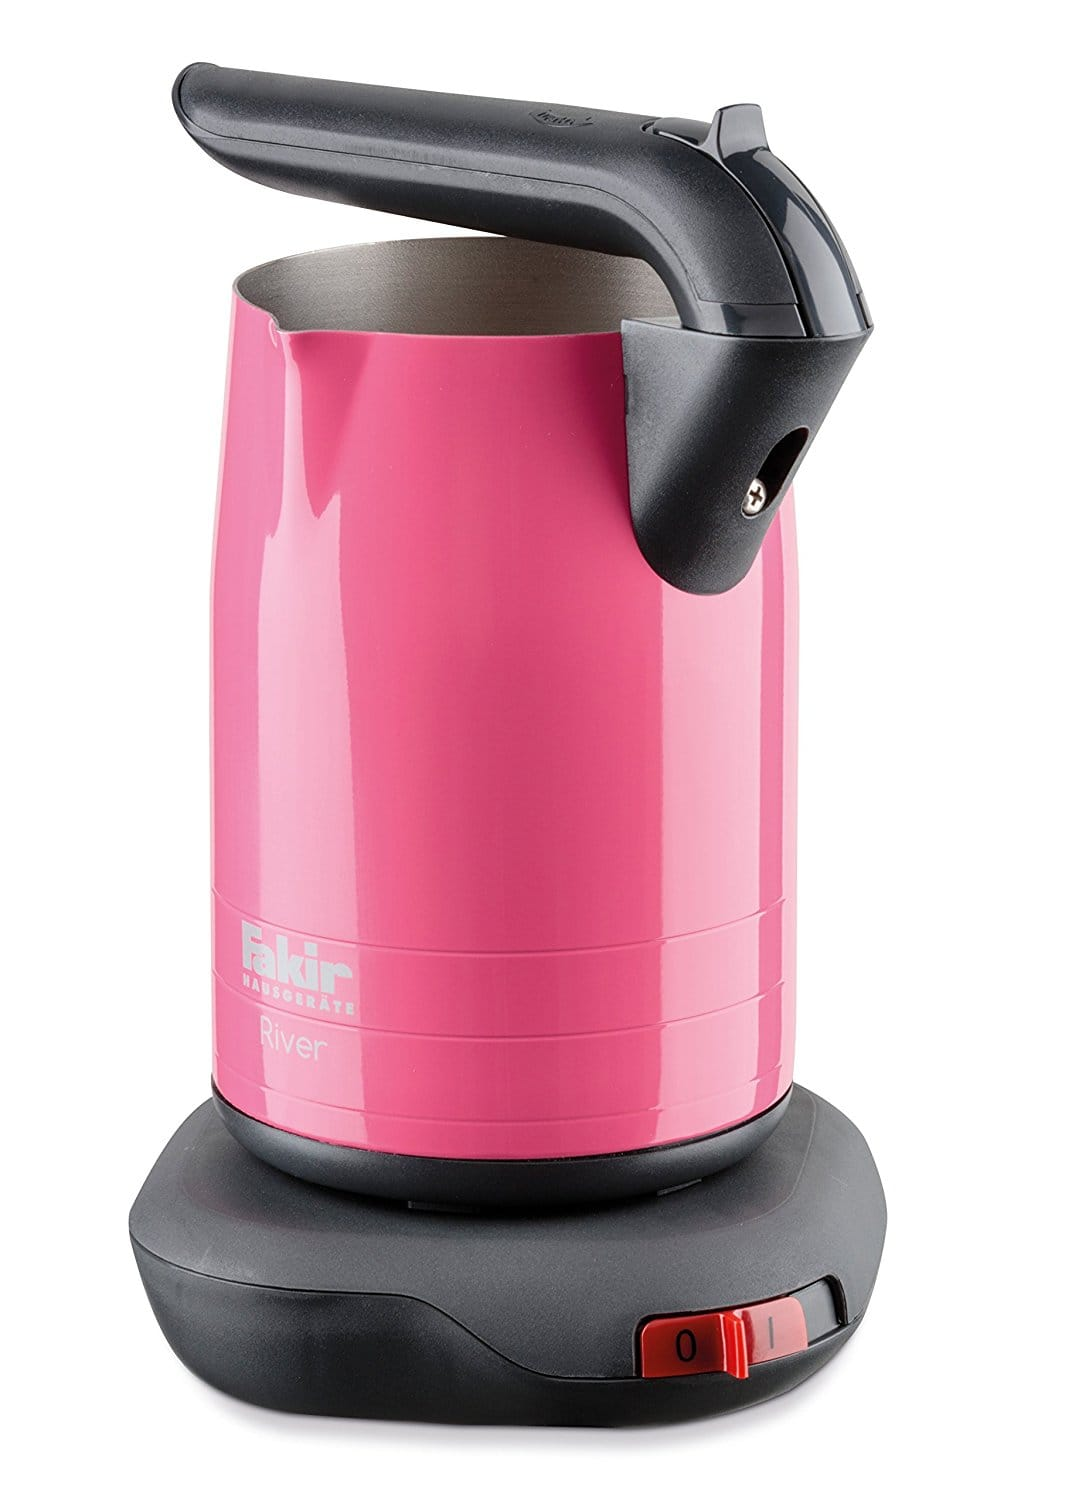 cafetiere rose machine a cafe turc